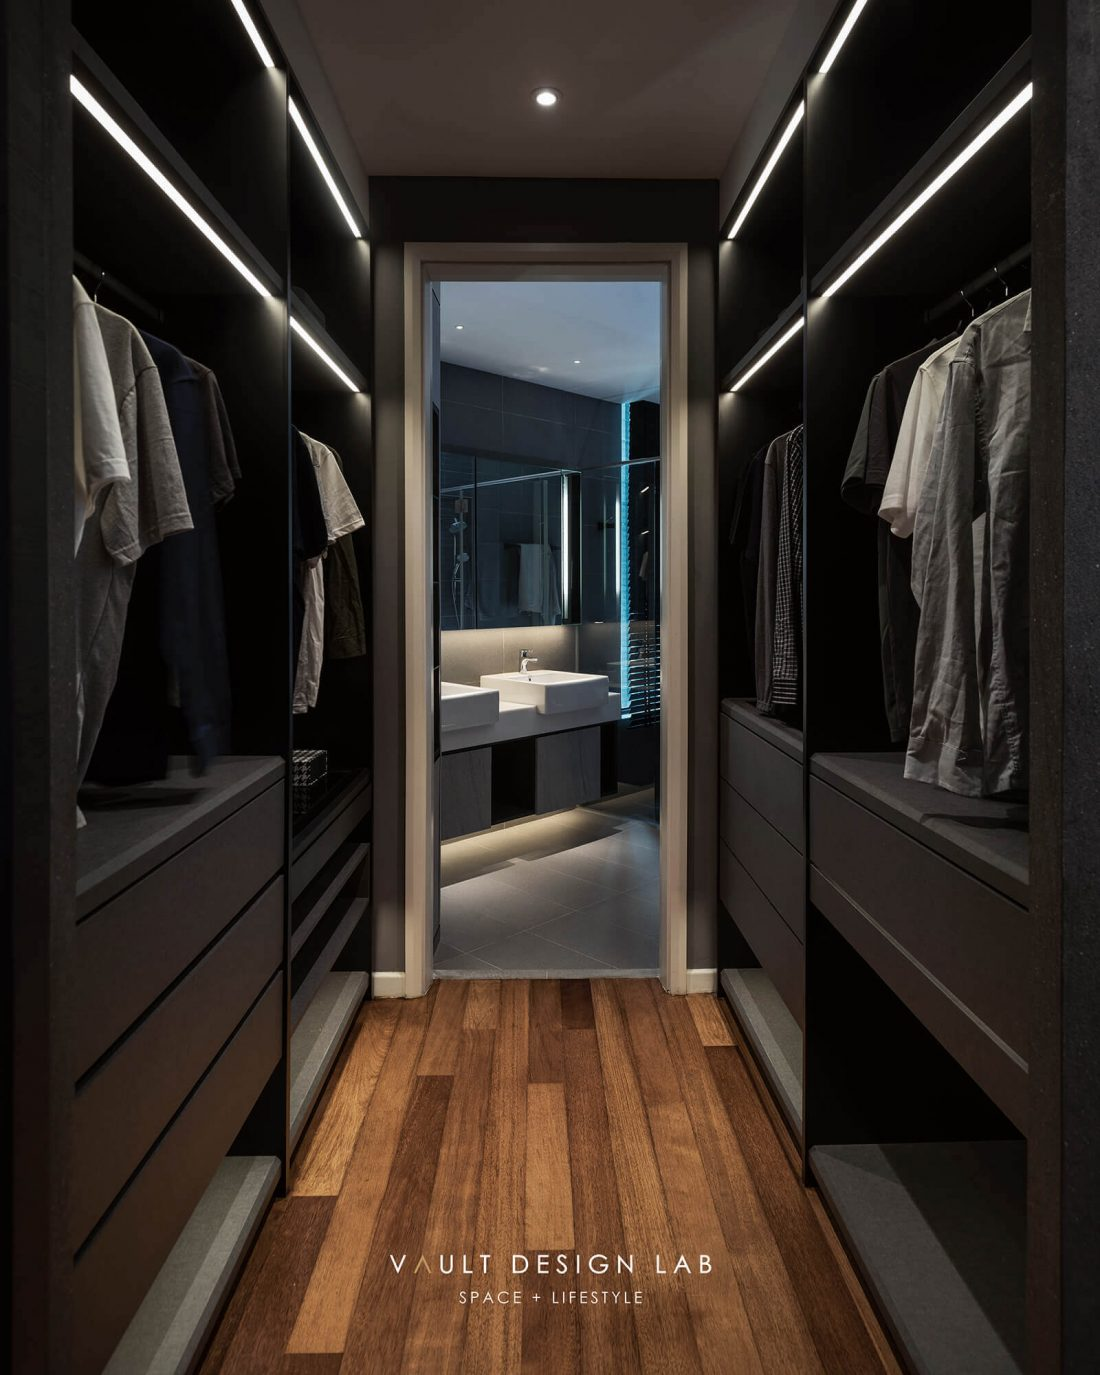 Interior Design The Light Collection III Penang Malaysia Master Bedroom Walk In Wardrobe Design v2